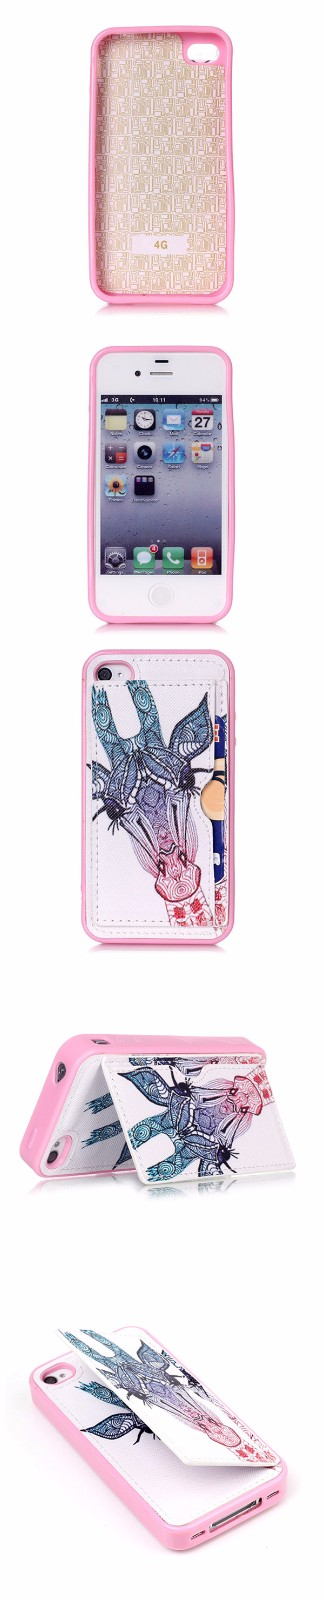 TPU+PU Leather Pink Creative Elephant/Flower/Dog/Tribe/Giraffe/OK/Macaron Case Cover For iPhone 4 4s